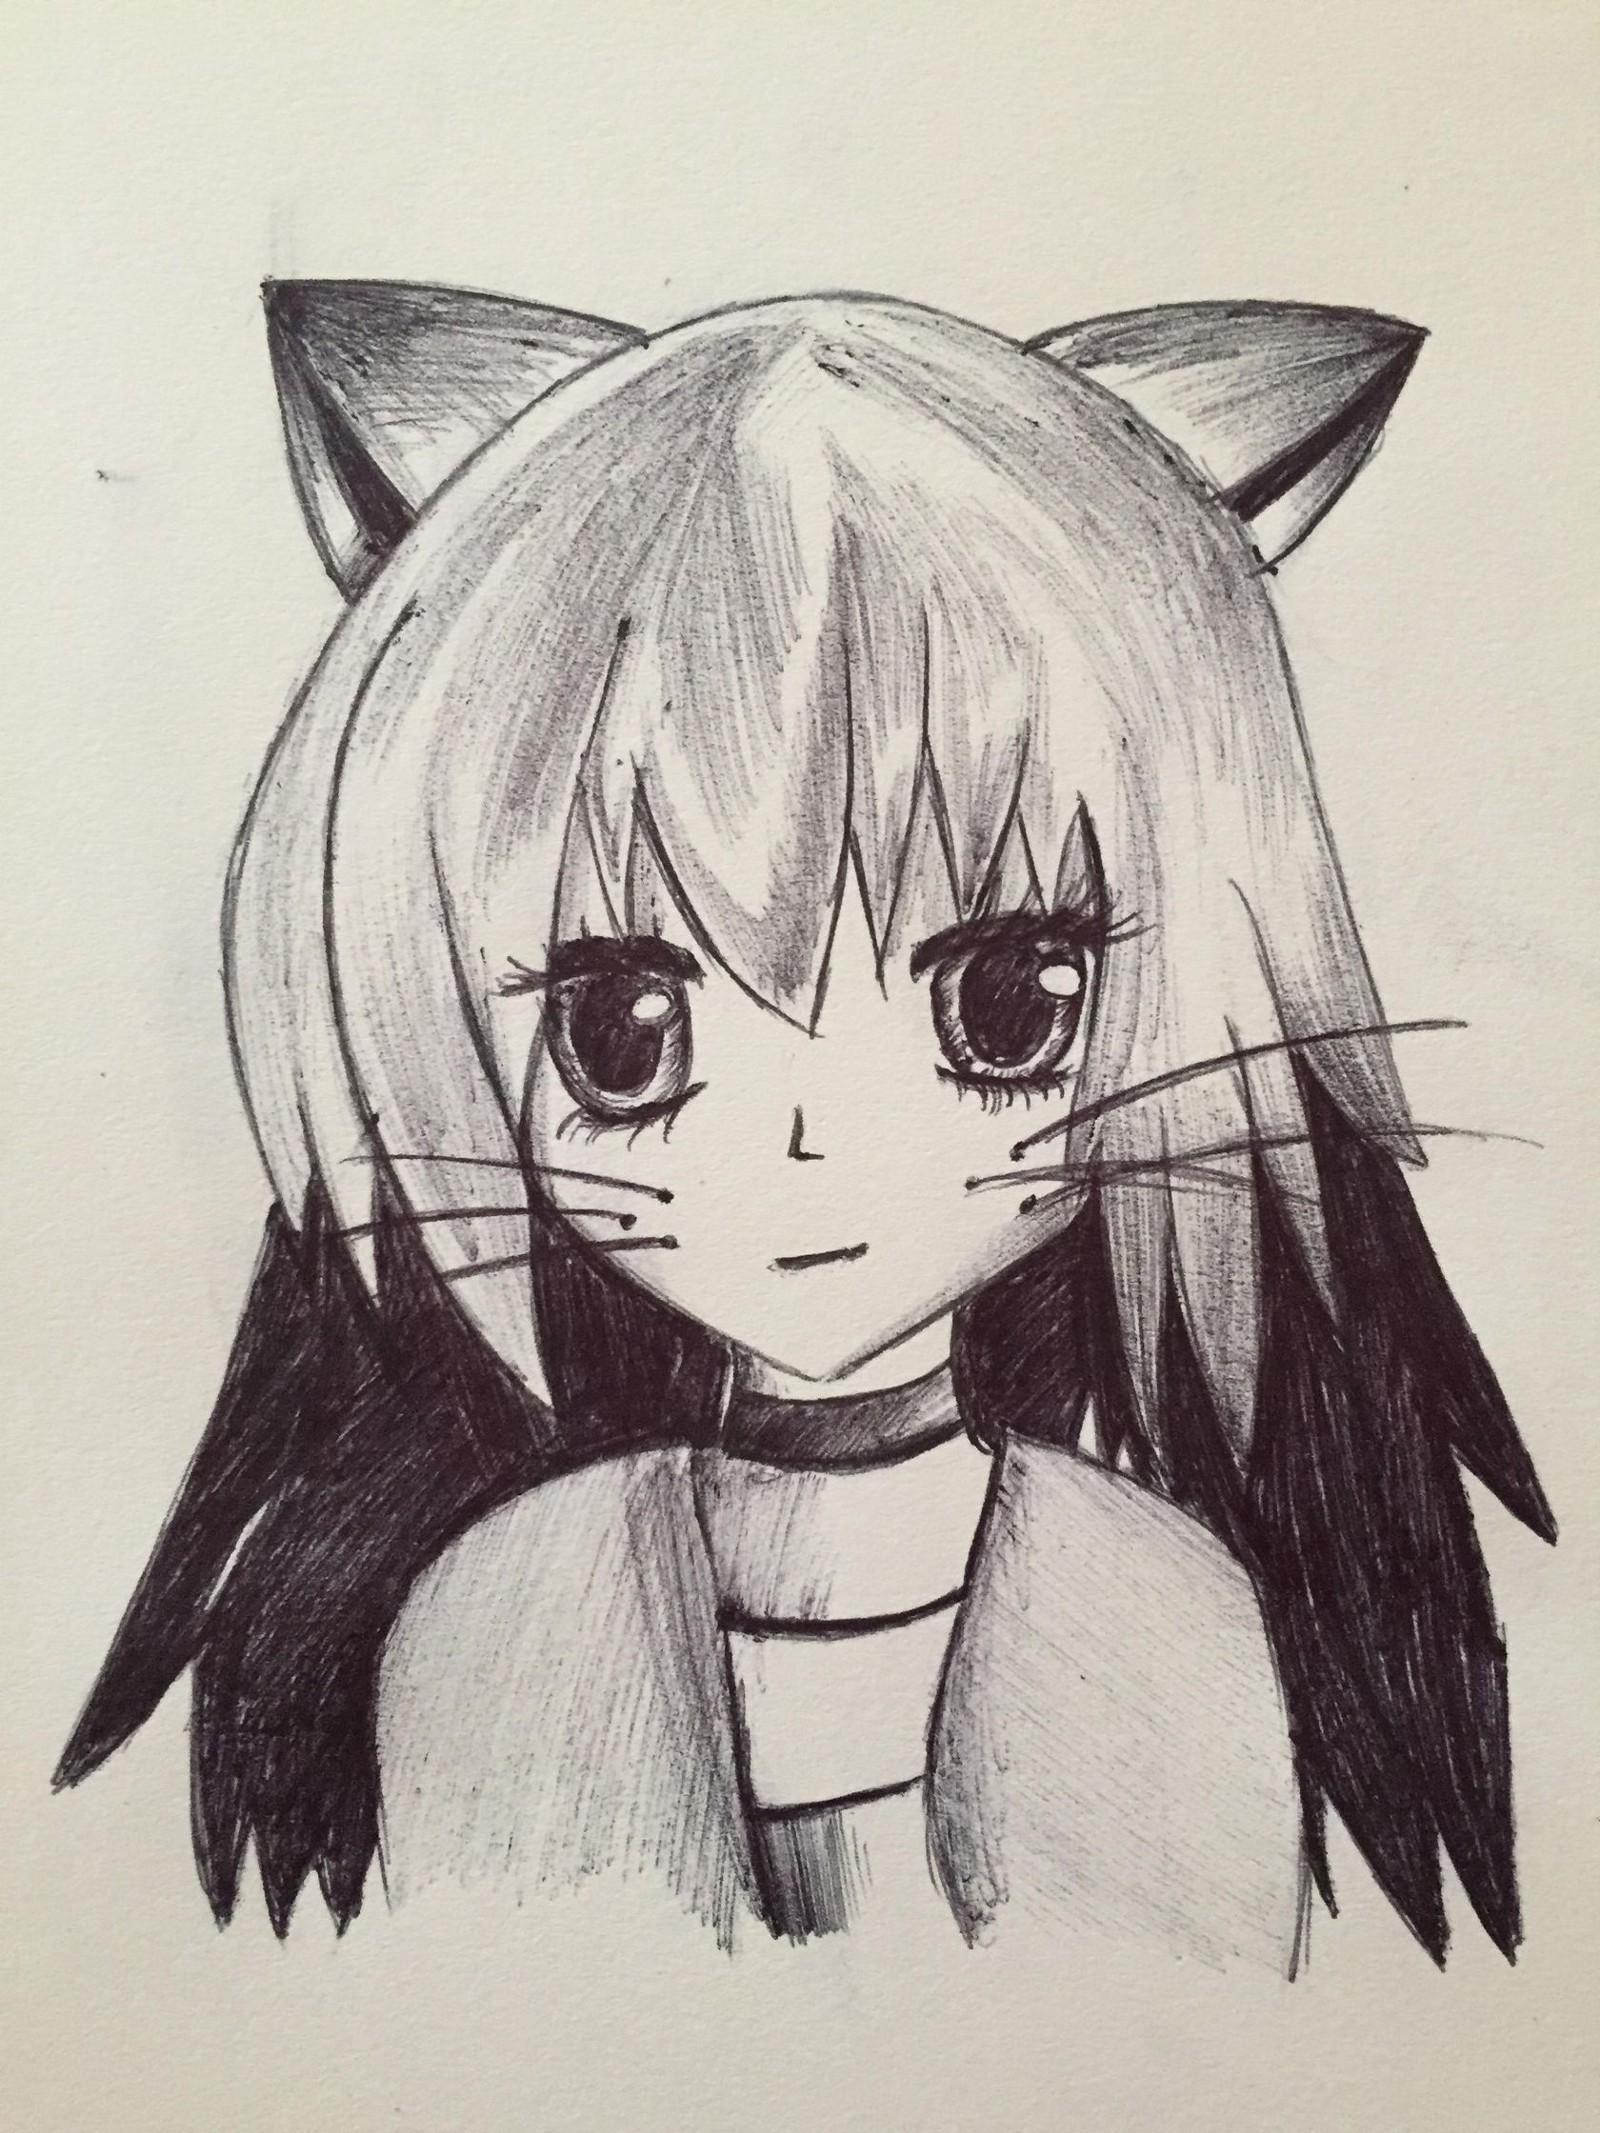 Cat anime girl drawing original art by kaylin